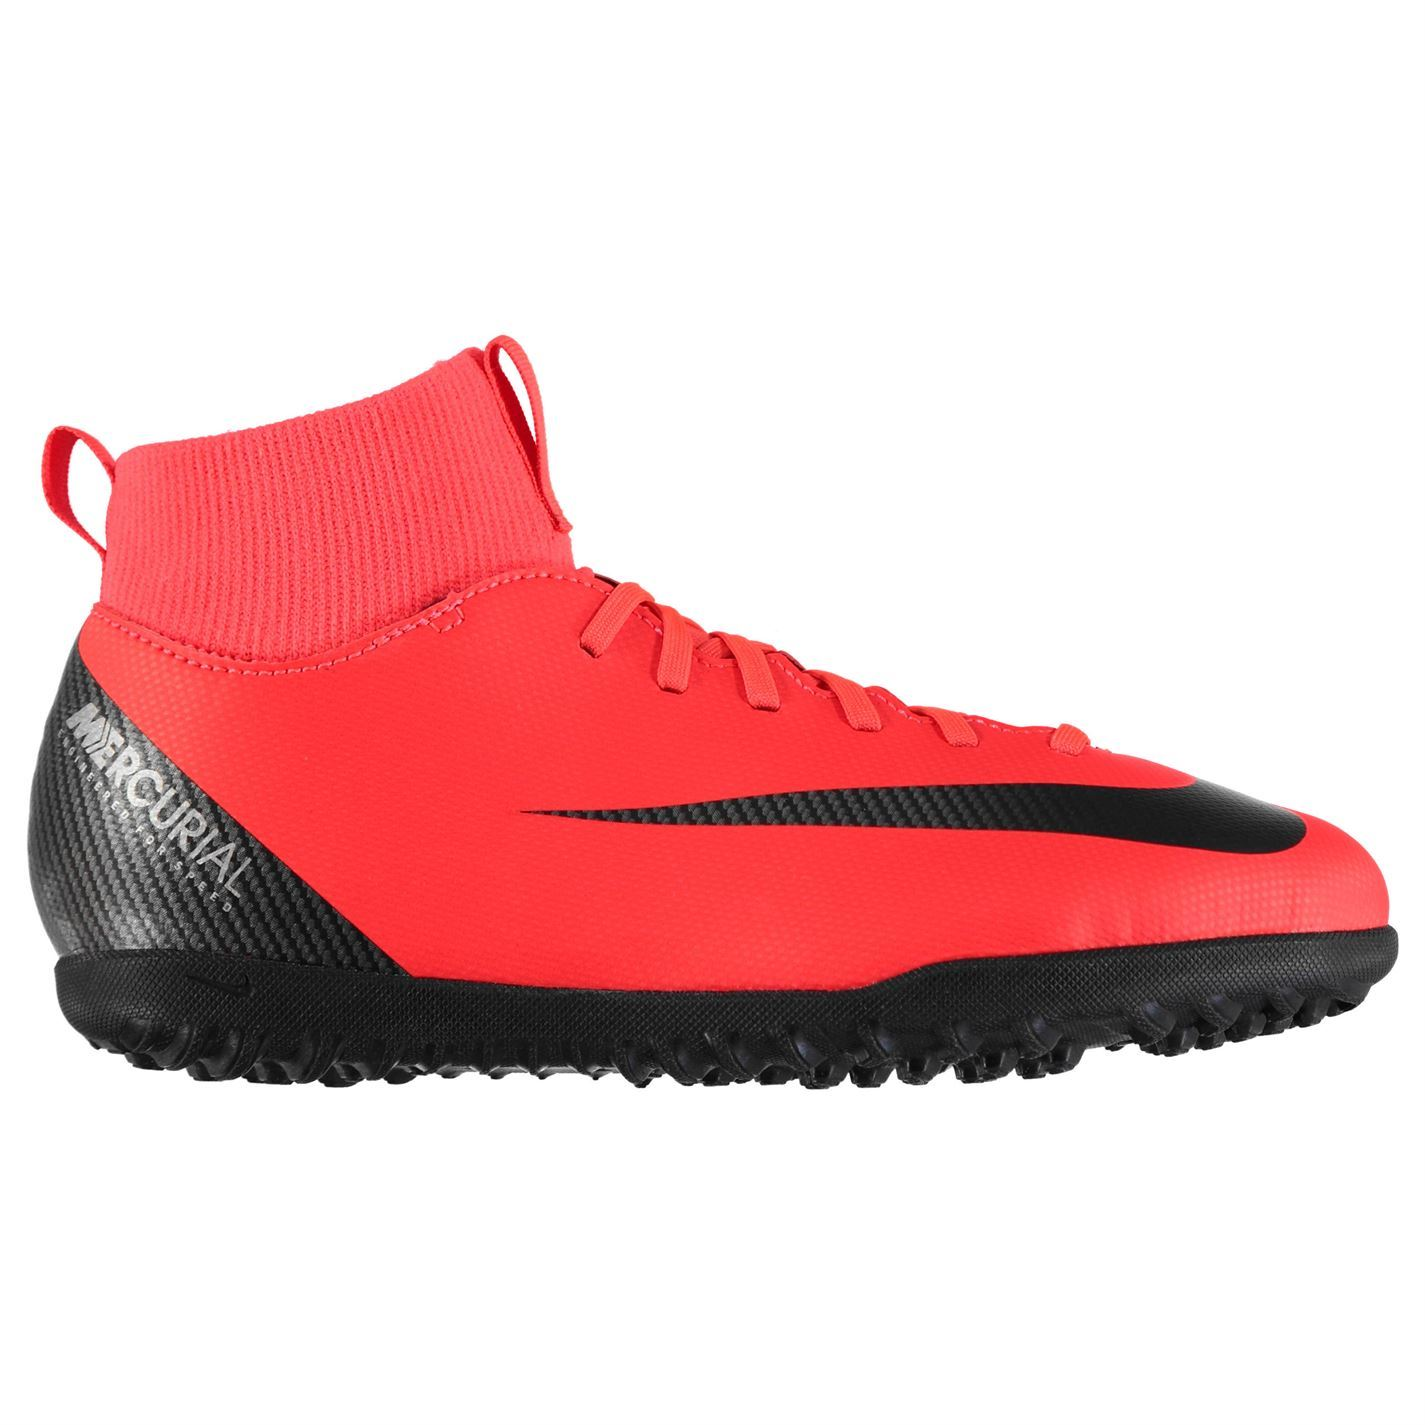 Details about Nike Mercurial Superfly Club CR7 Astro Football Trainers Juniors Red Soccer Shoe